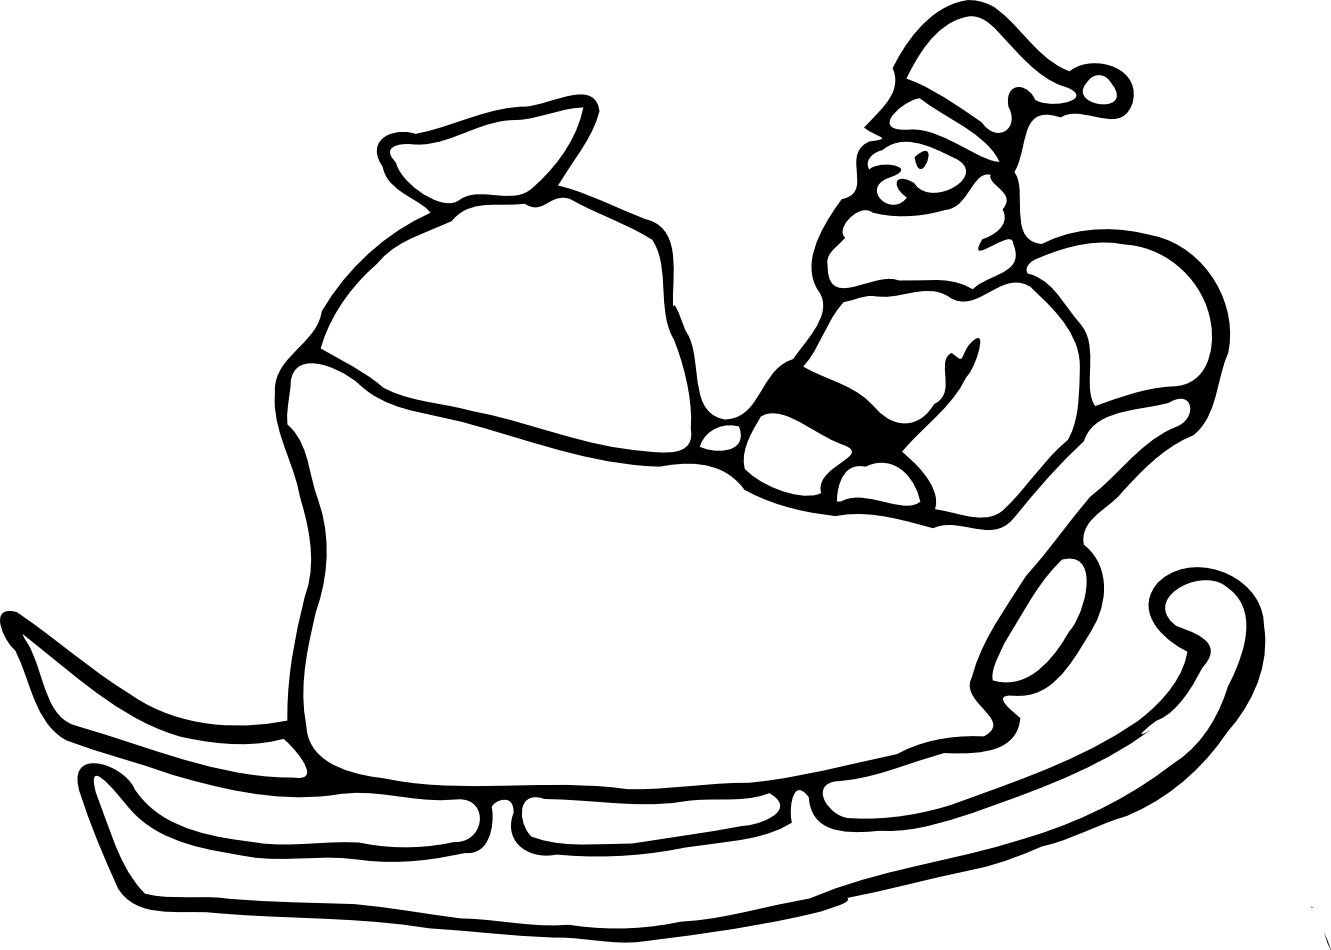 Christmas dog clipart black and white jpg download Free rudolph sleigh clipart christmas black and white jpg download